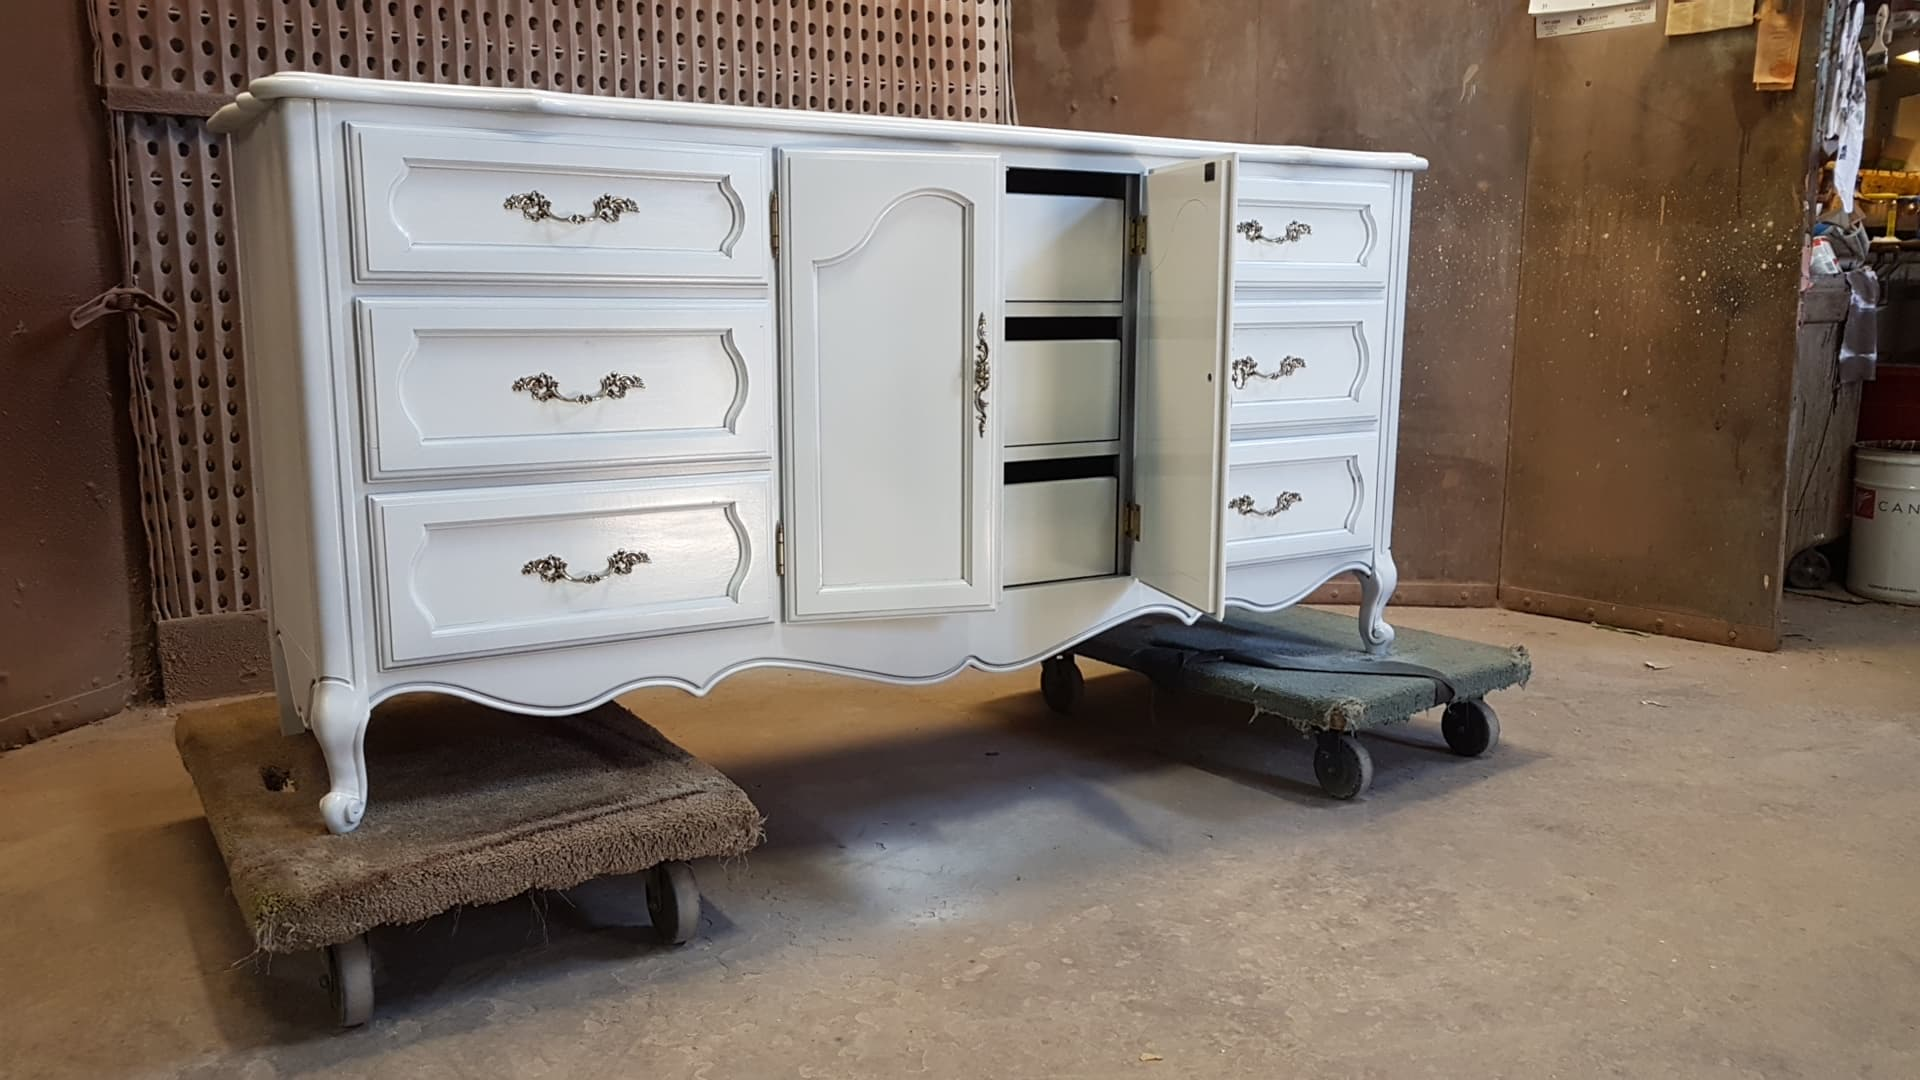 TUP Bedroom dresser with centre doors open showing 3 inside drawers March 2019.jpg